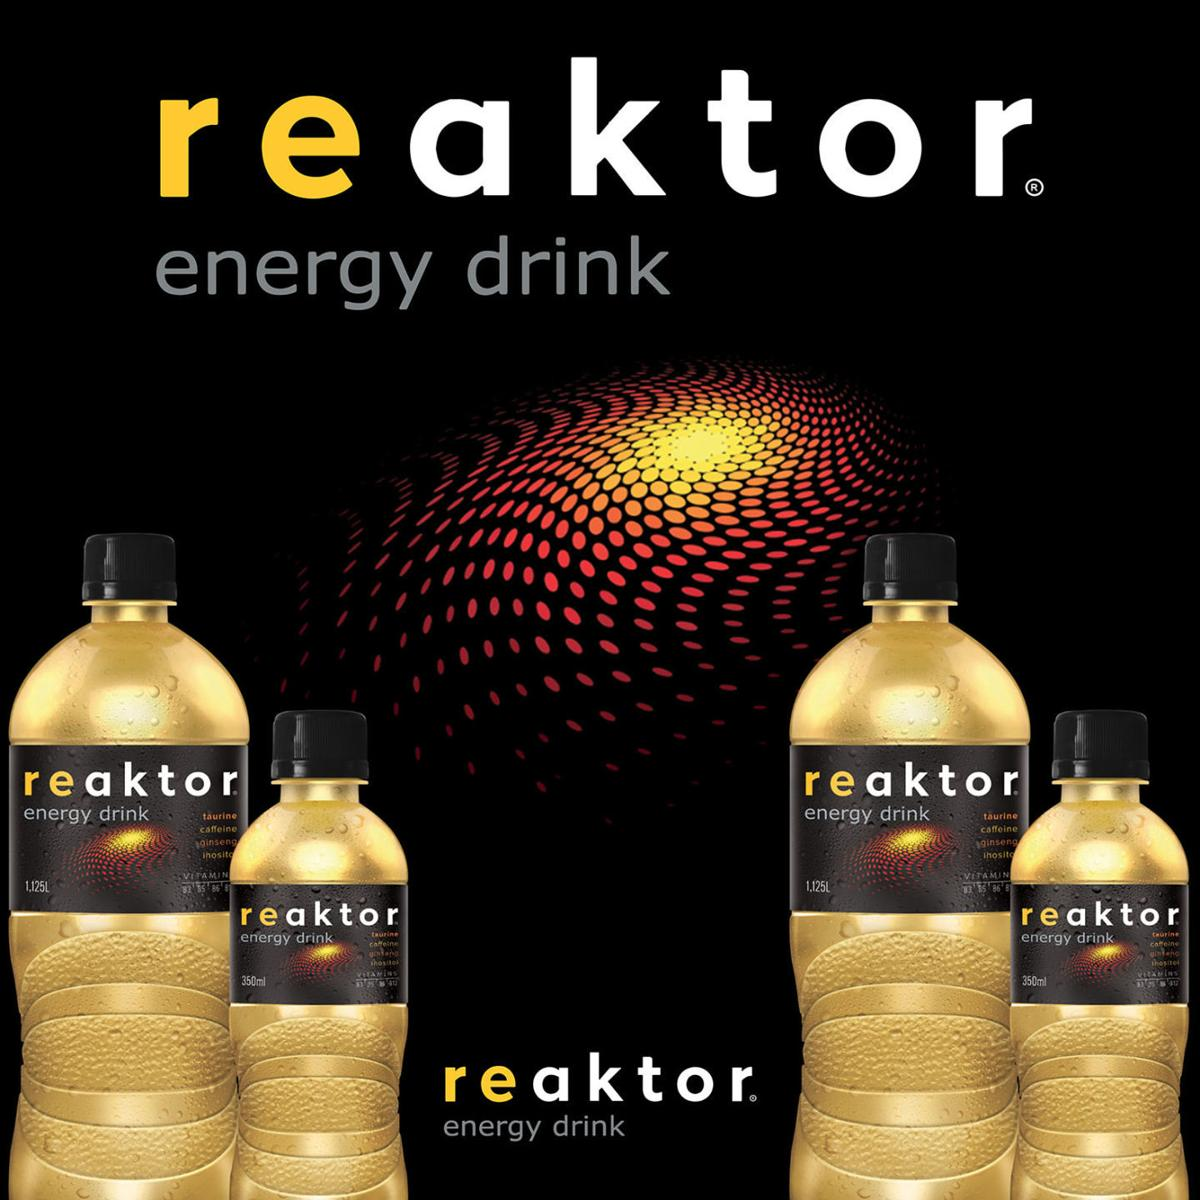 Reaktor Launch Party Tonight at Club Lit